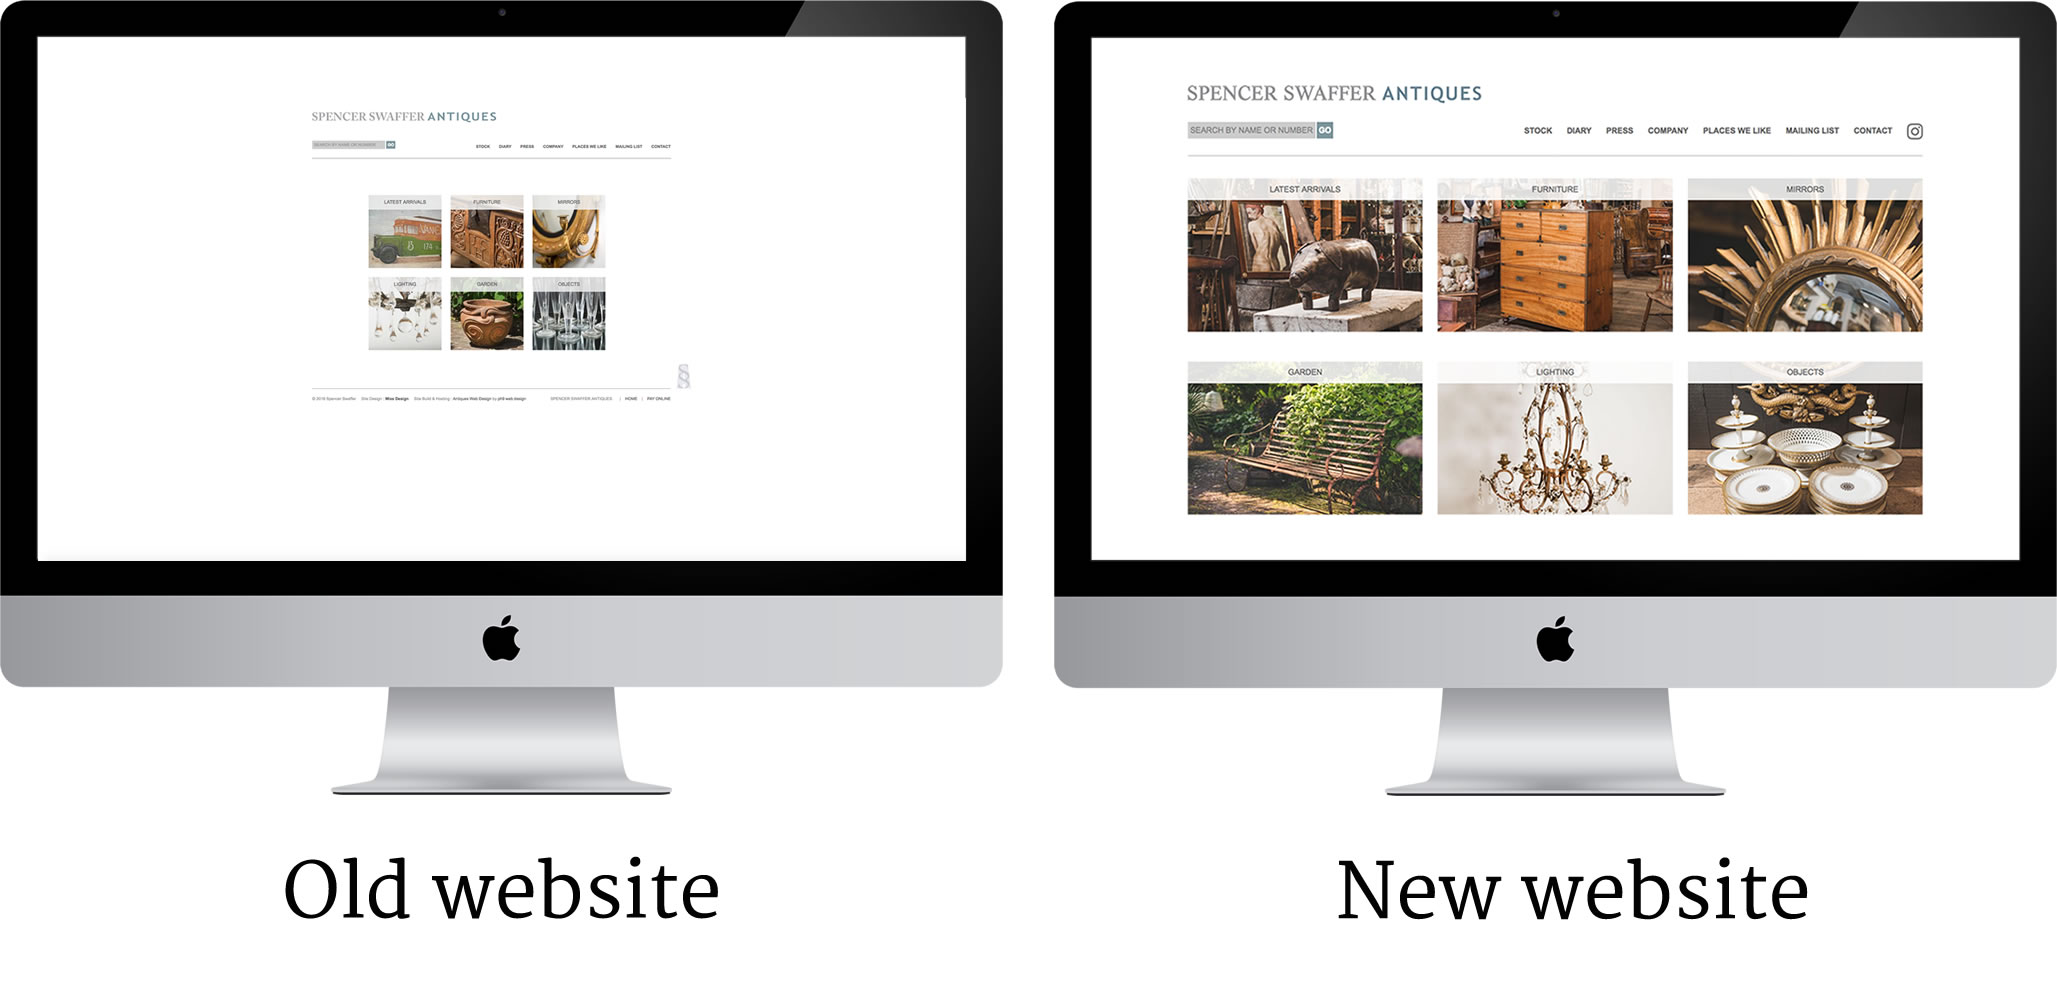 Antiques Web Site Design - Better on bigger screens